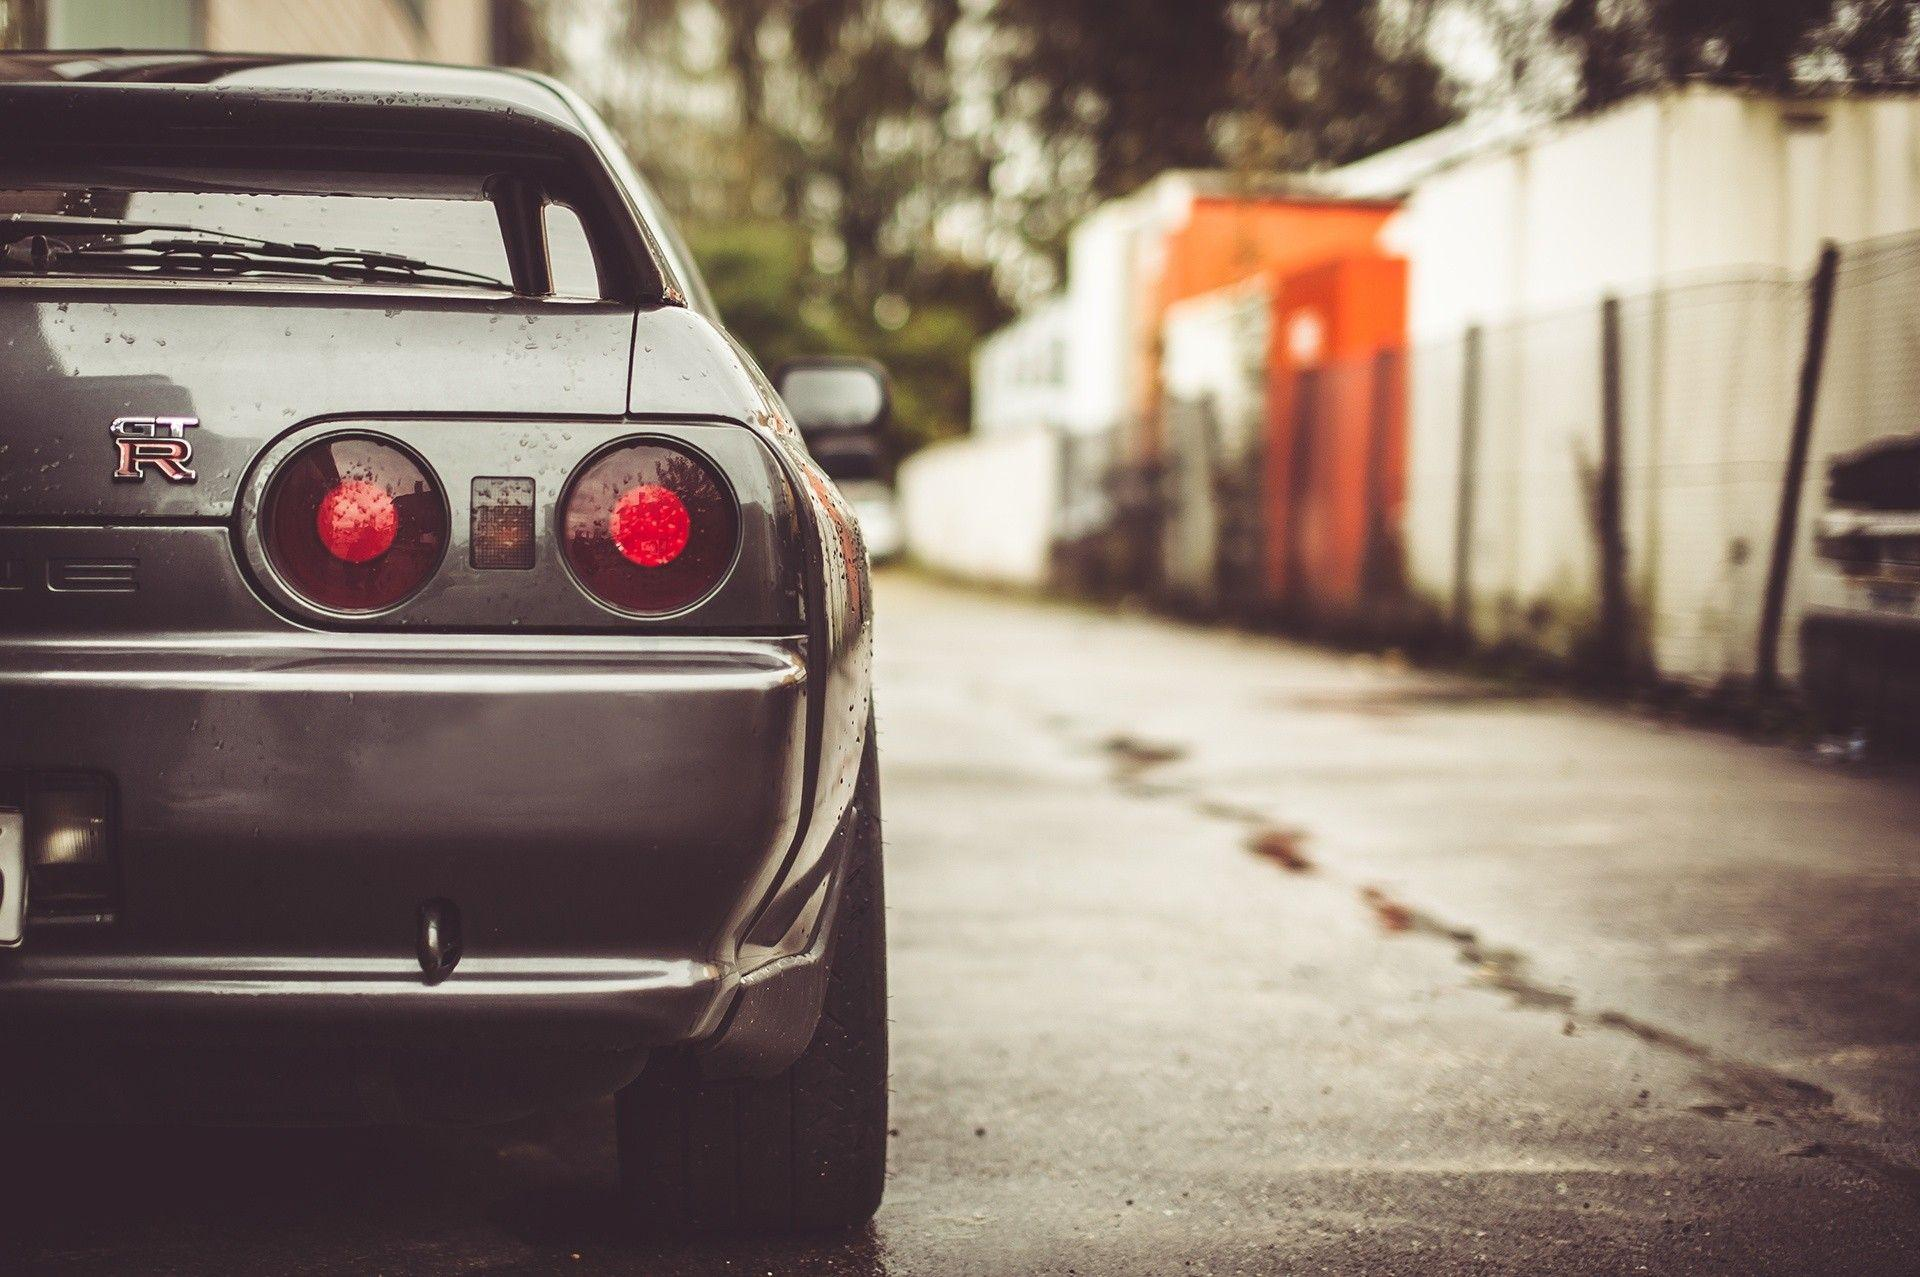 Skyline R32 Wallpapers Wallpaper Cave